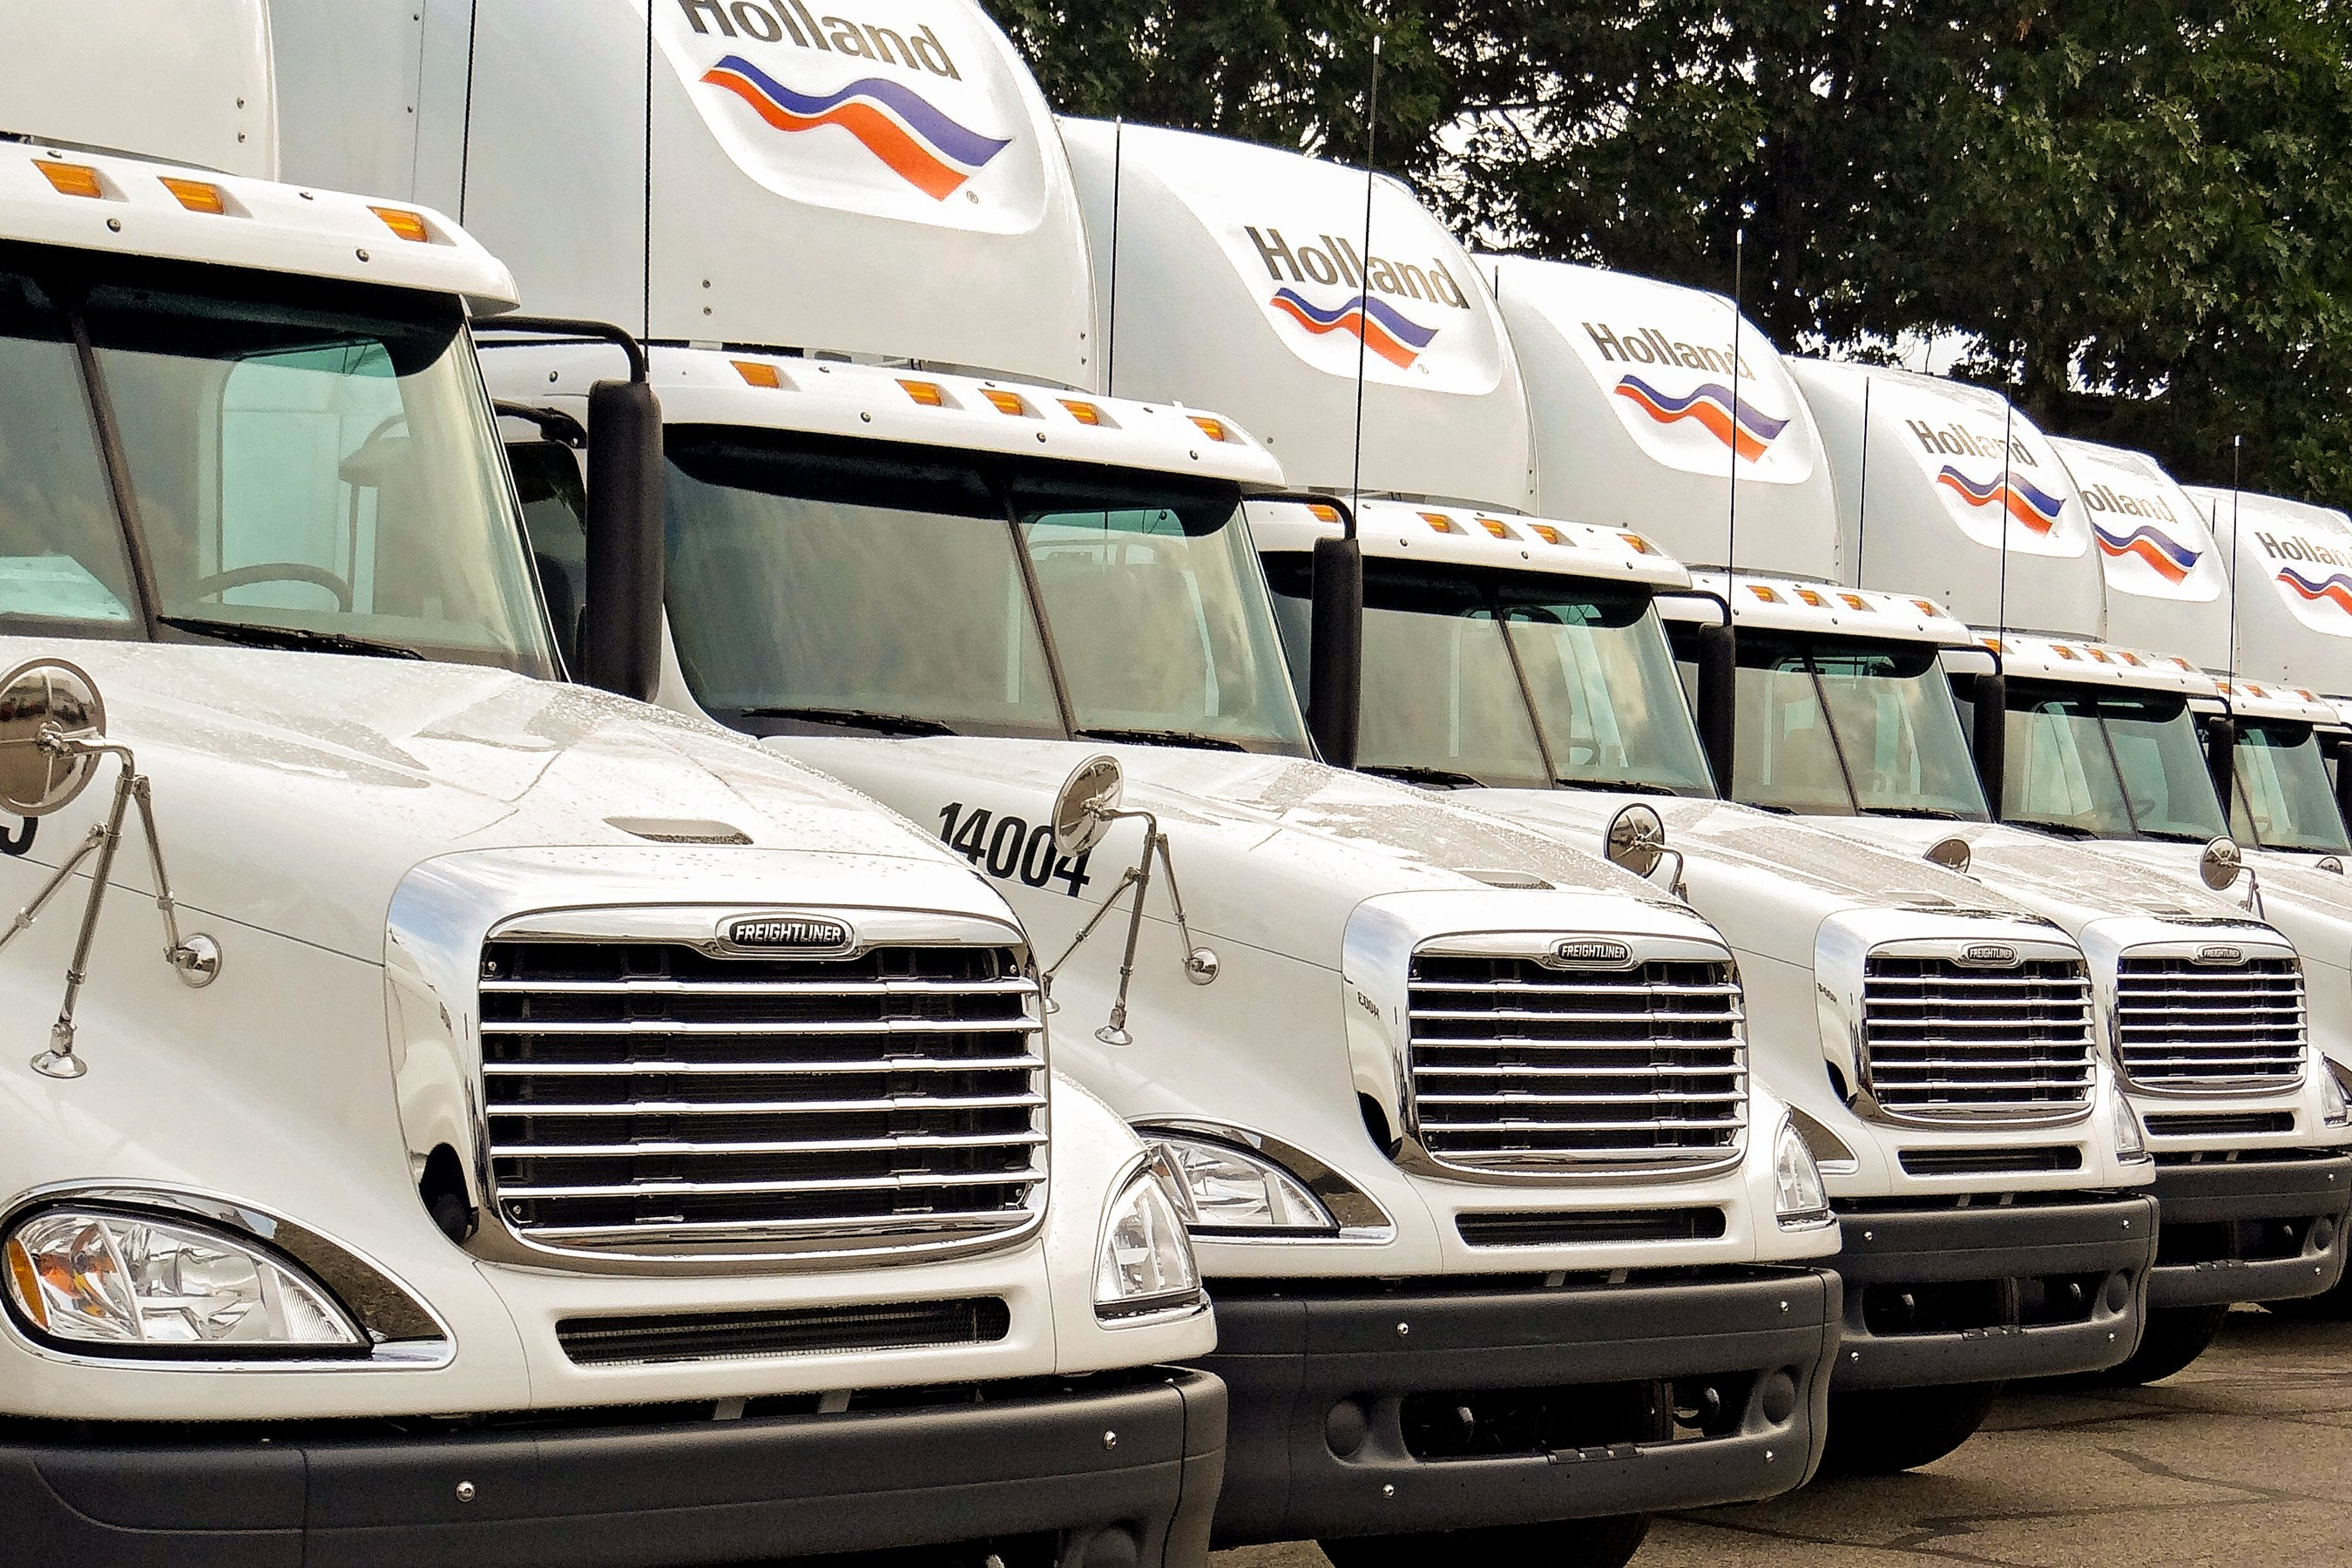 Holland Launches Apprentice Program to Bring in LTL Truck Drivers